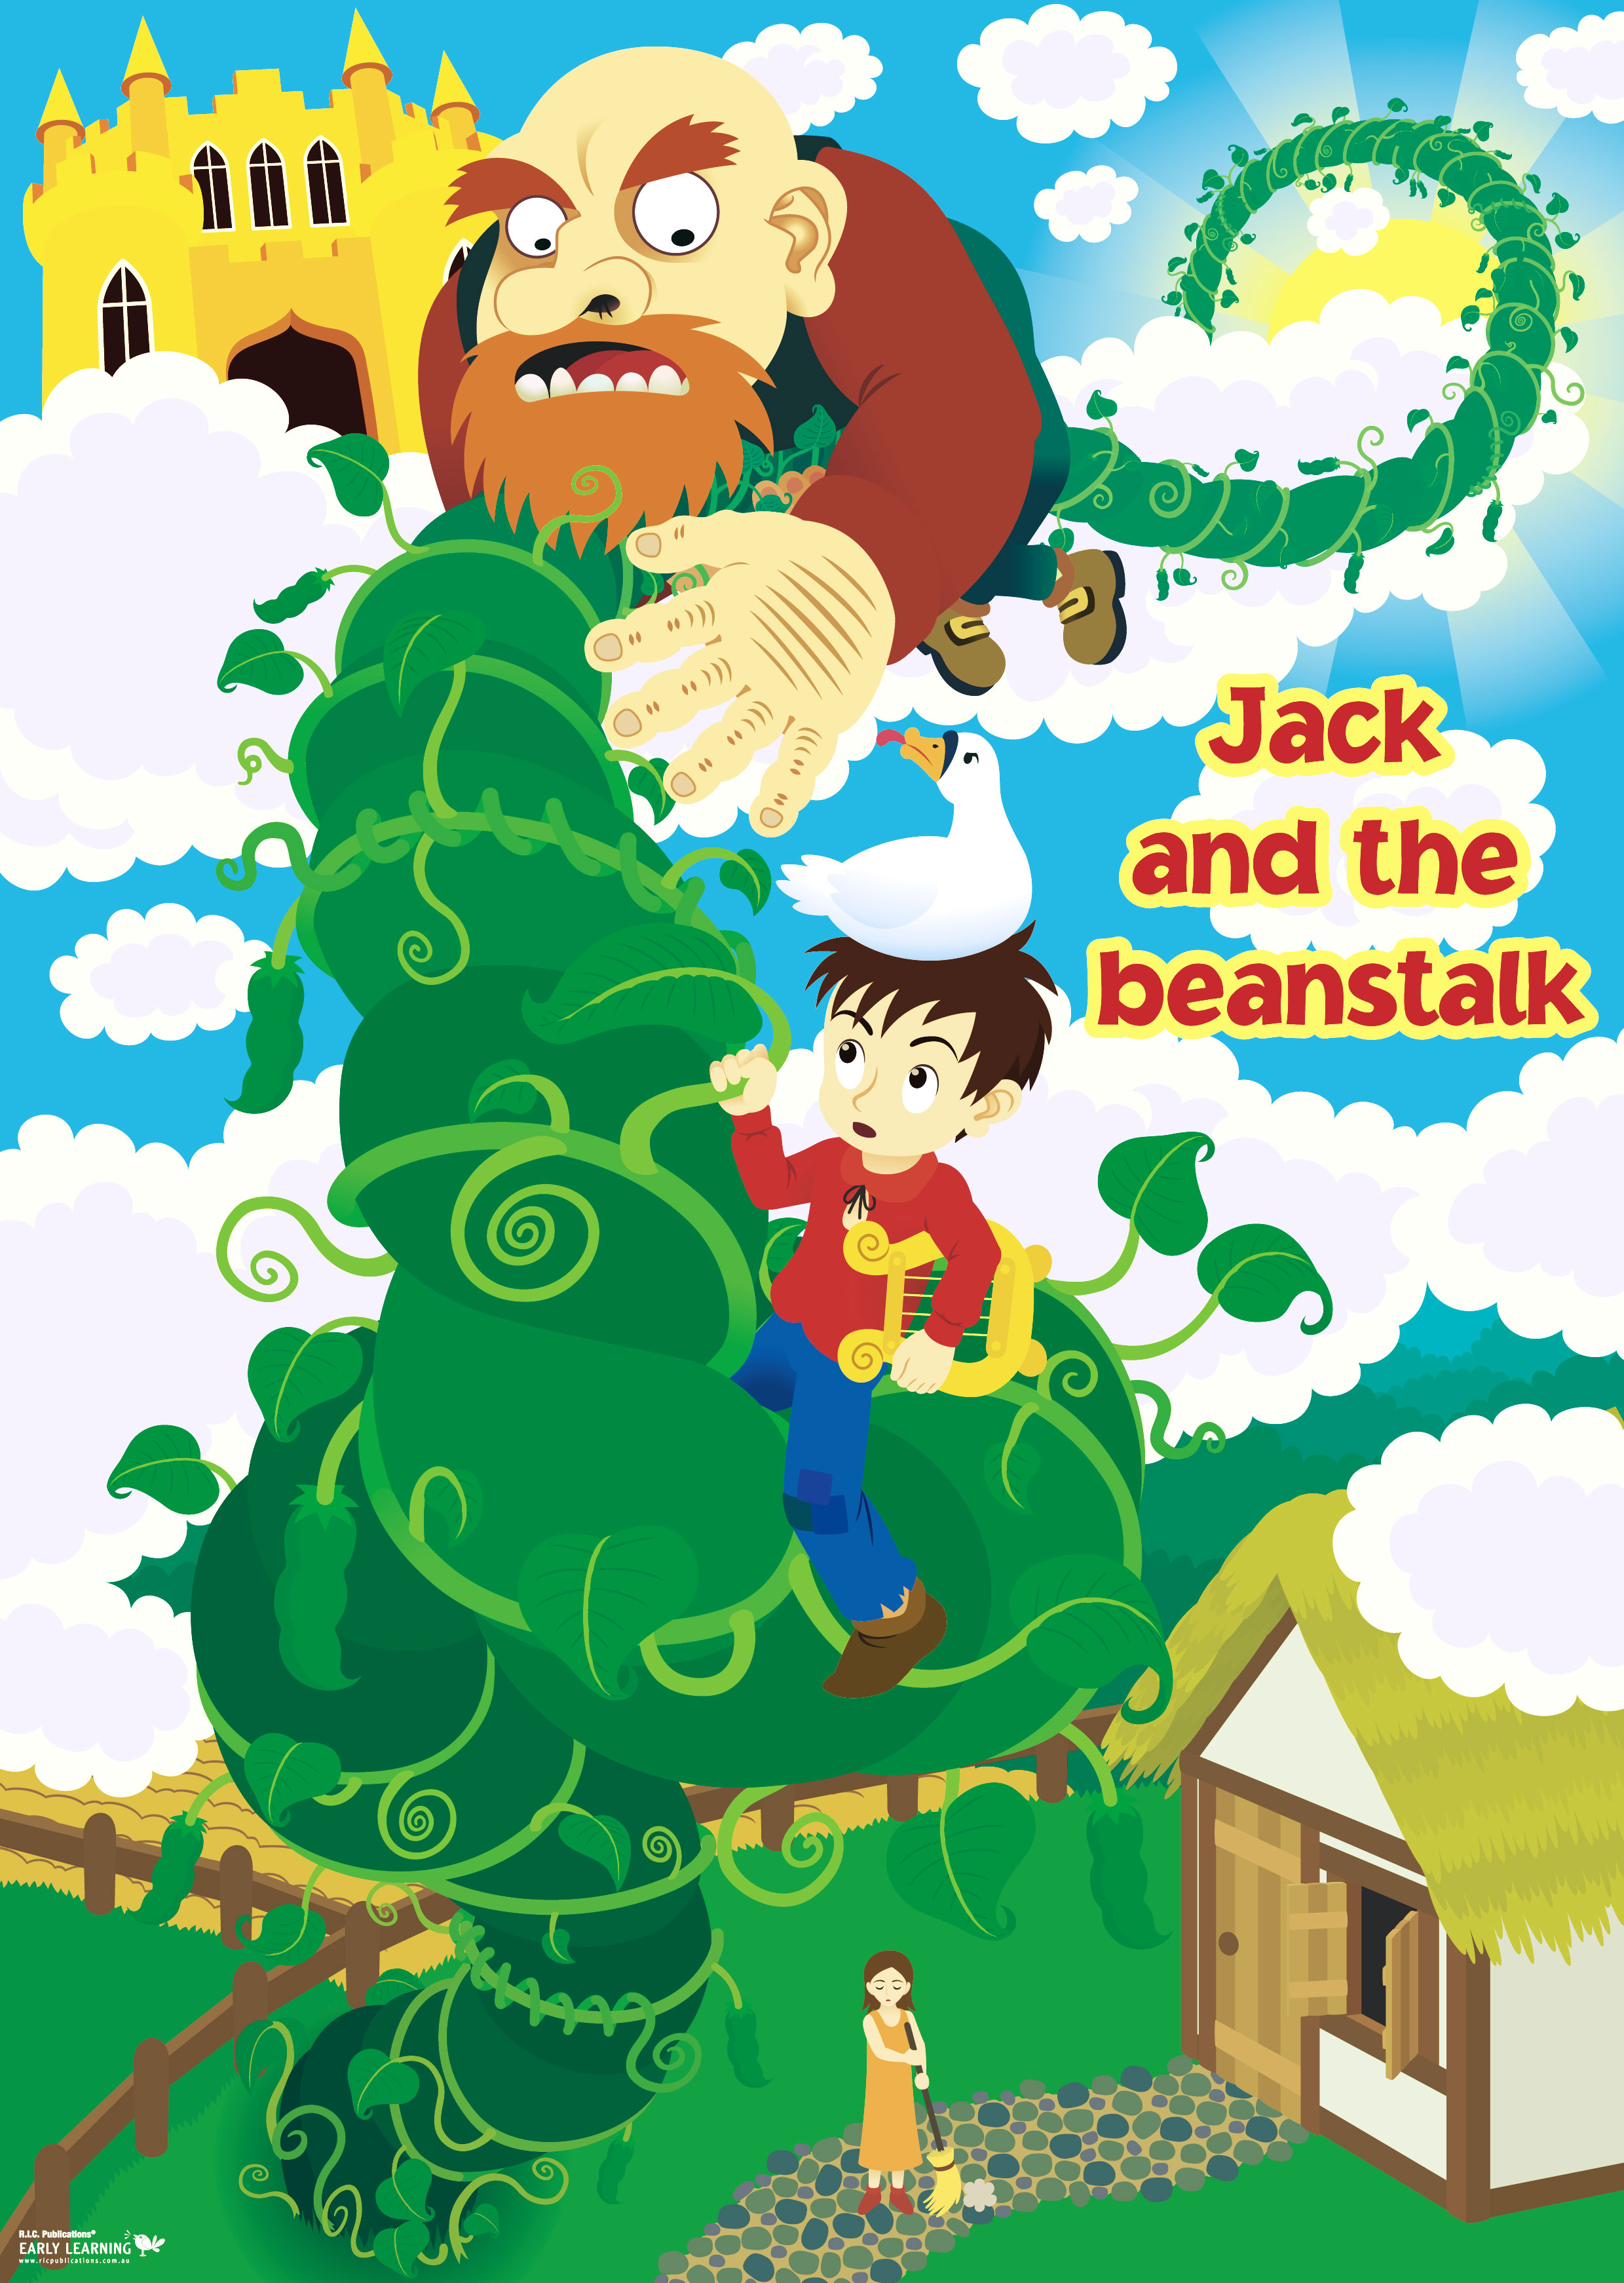 Watch more like Jack And The Beanstalk Art Activities